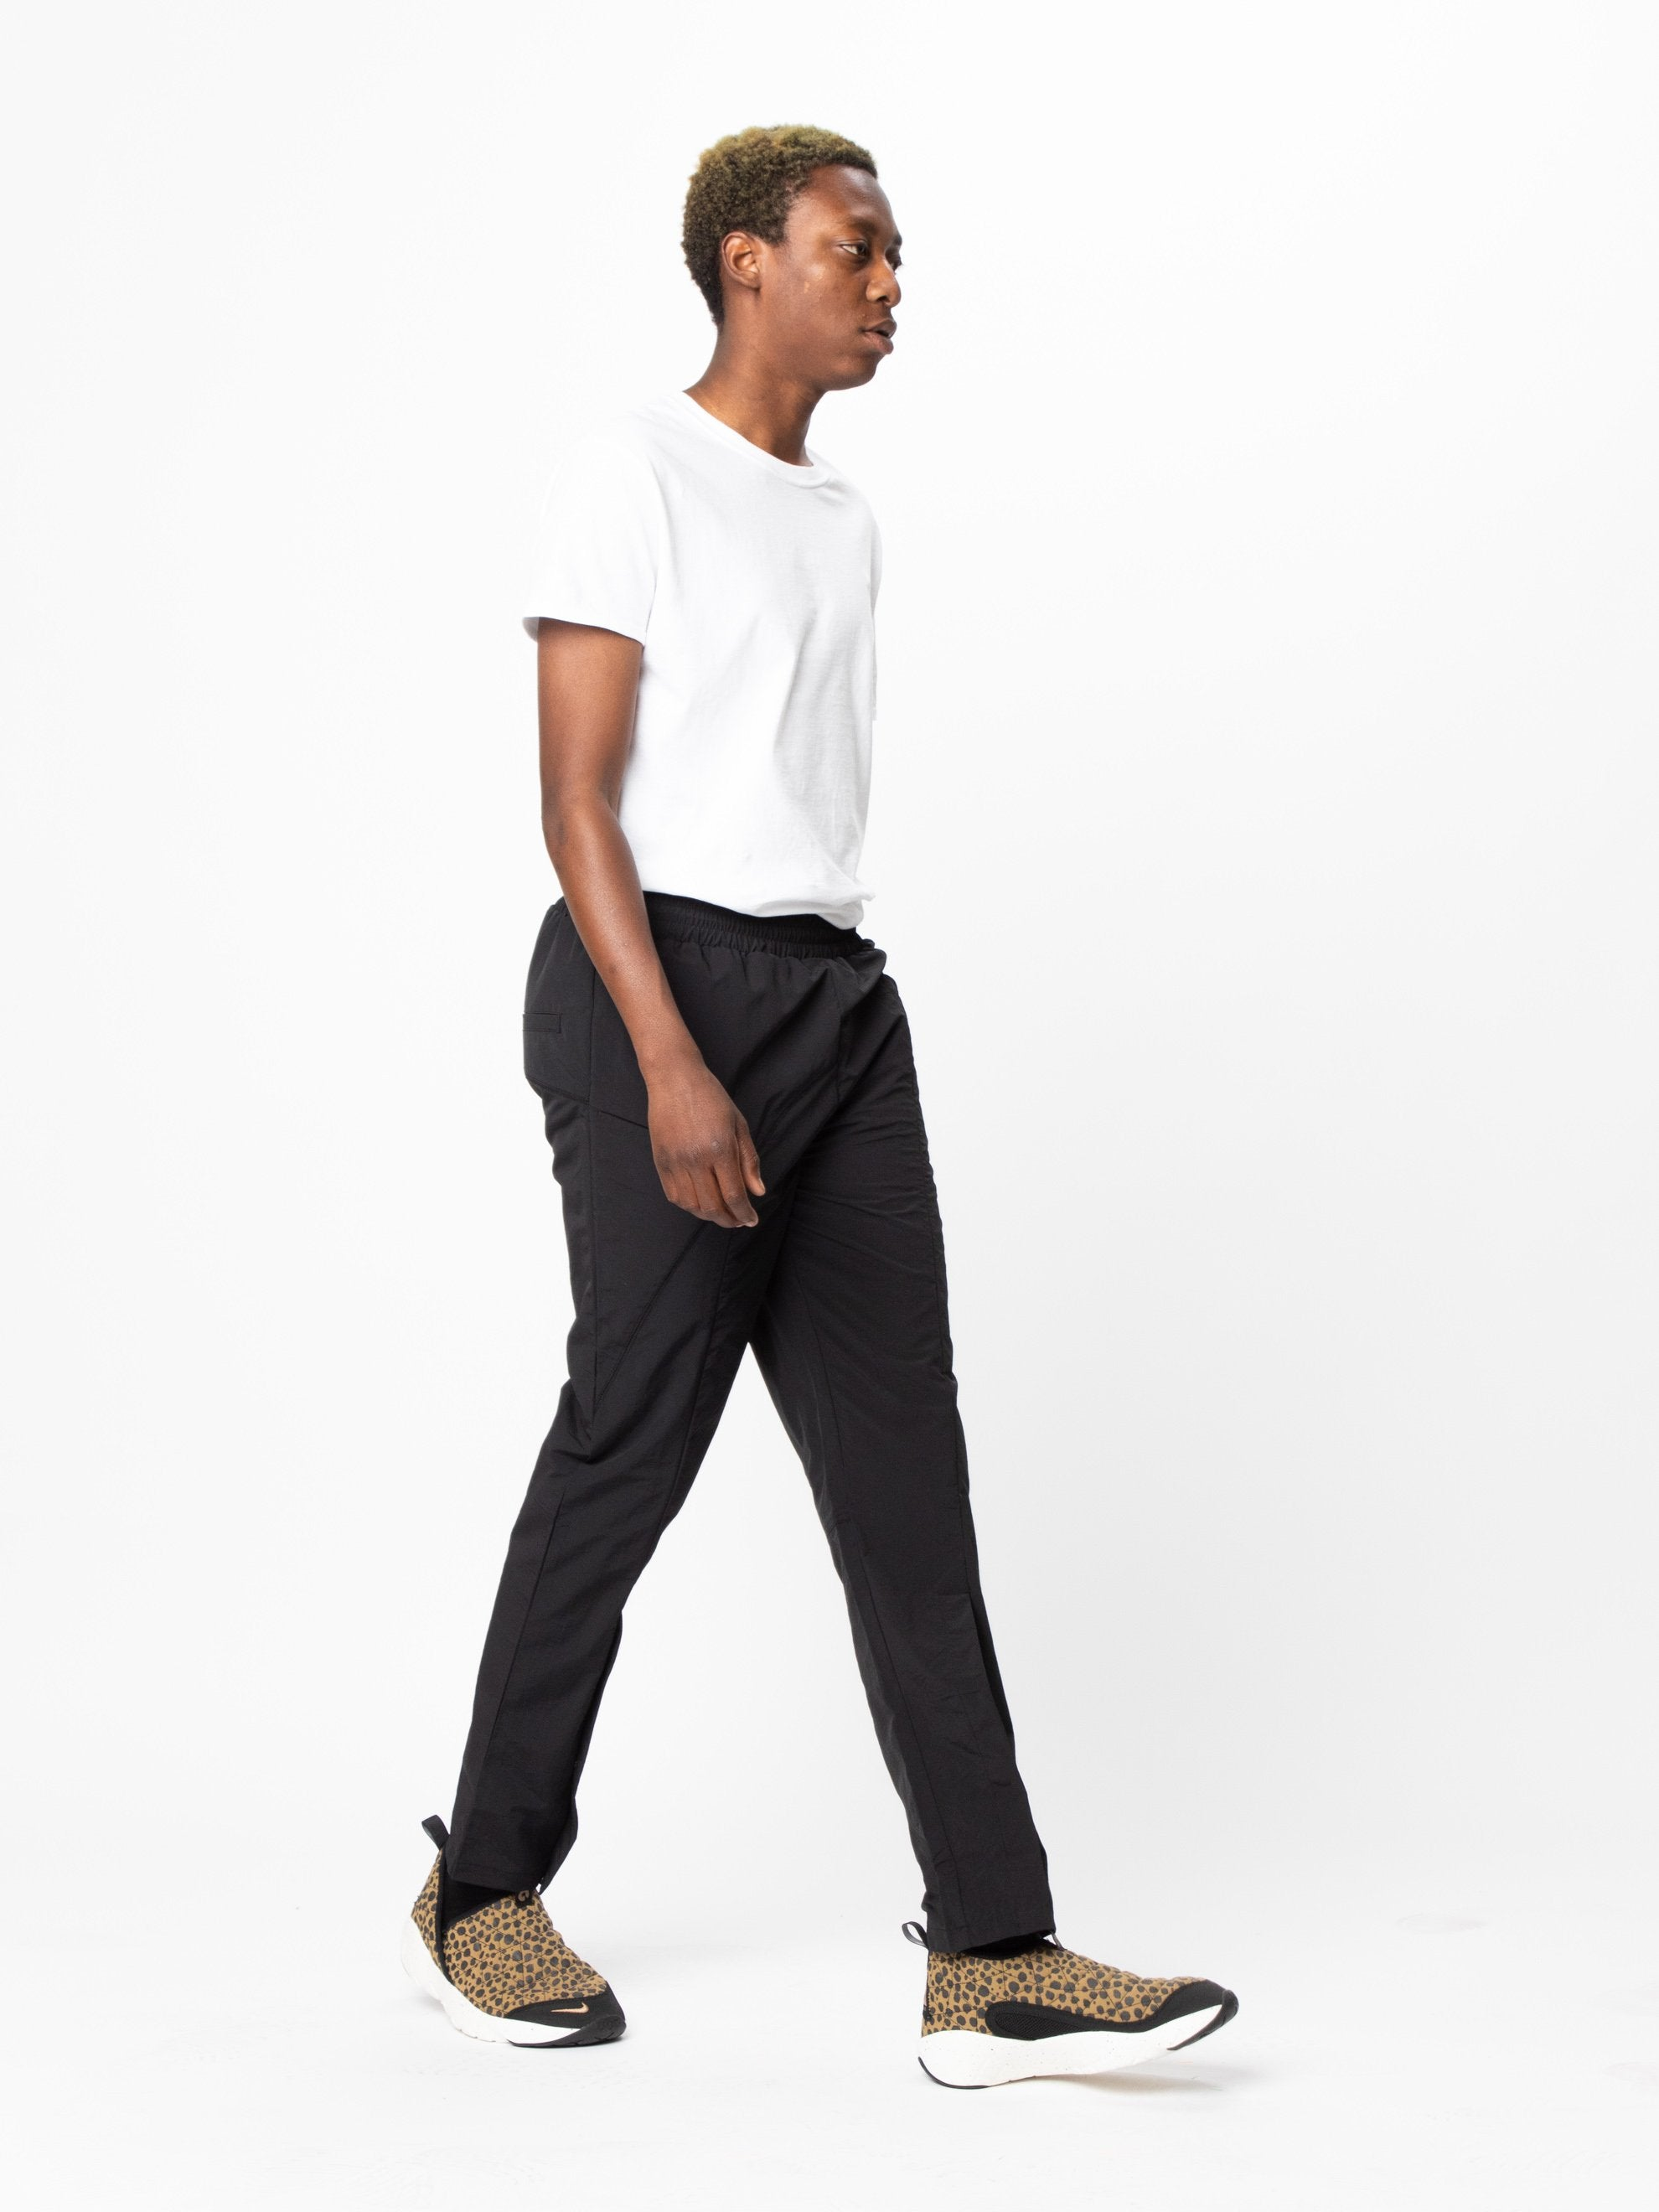 Black Woven Pant Curved Stitch Track Pants 6